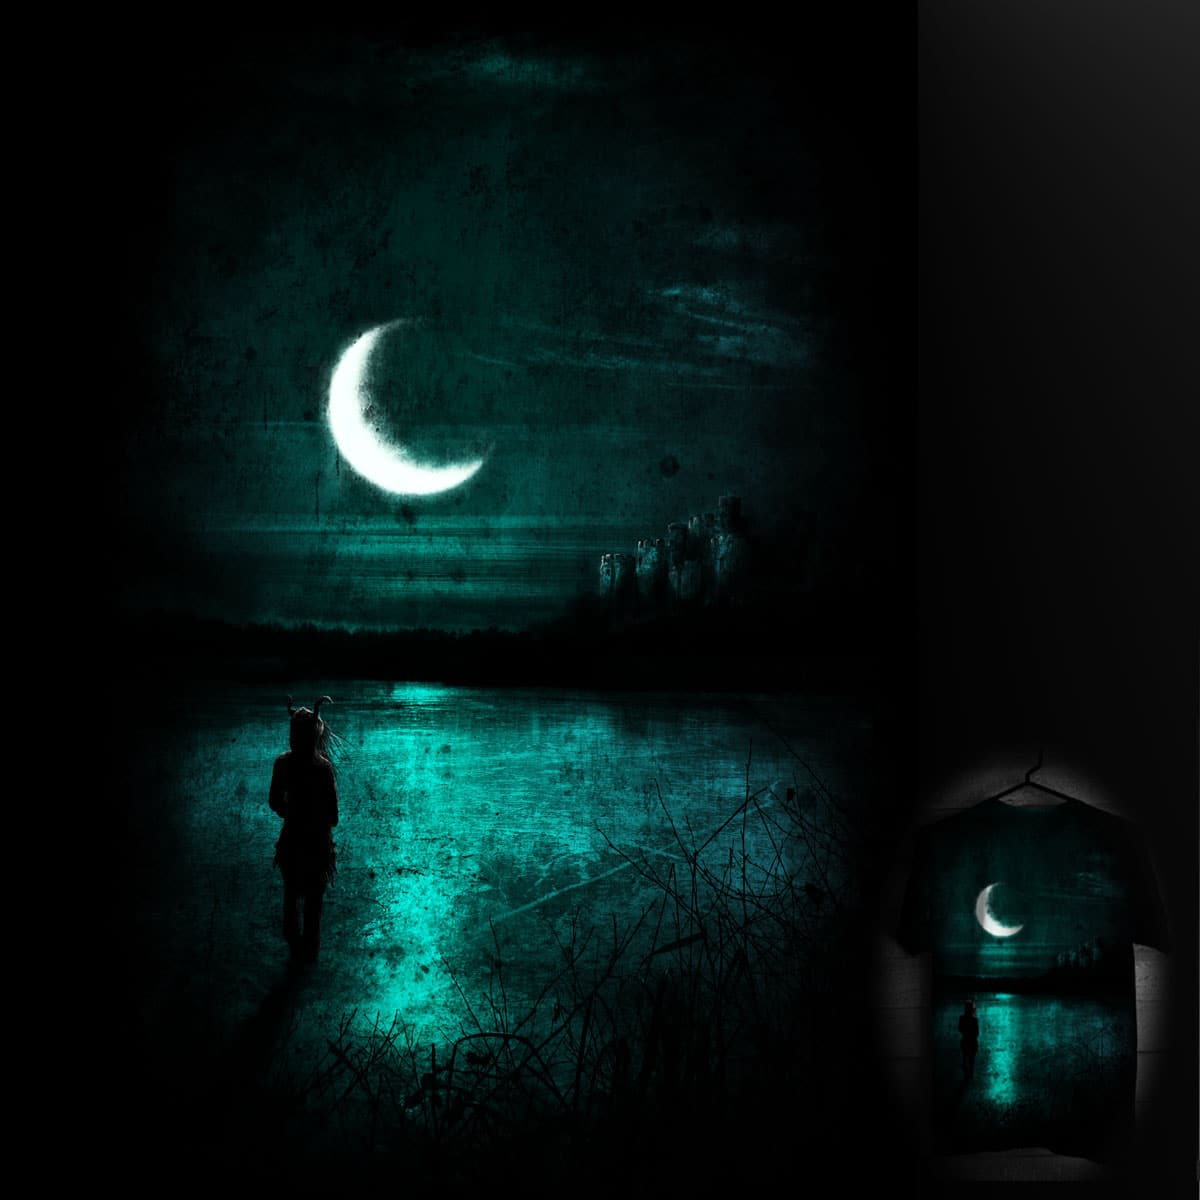 Silent under the moonlight by Jakewashere on Threadless